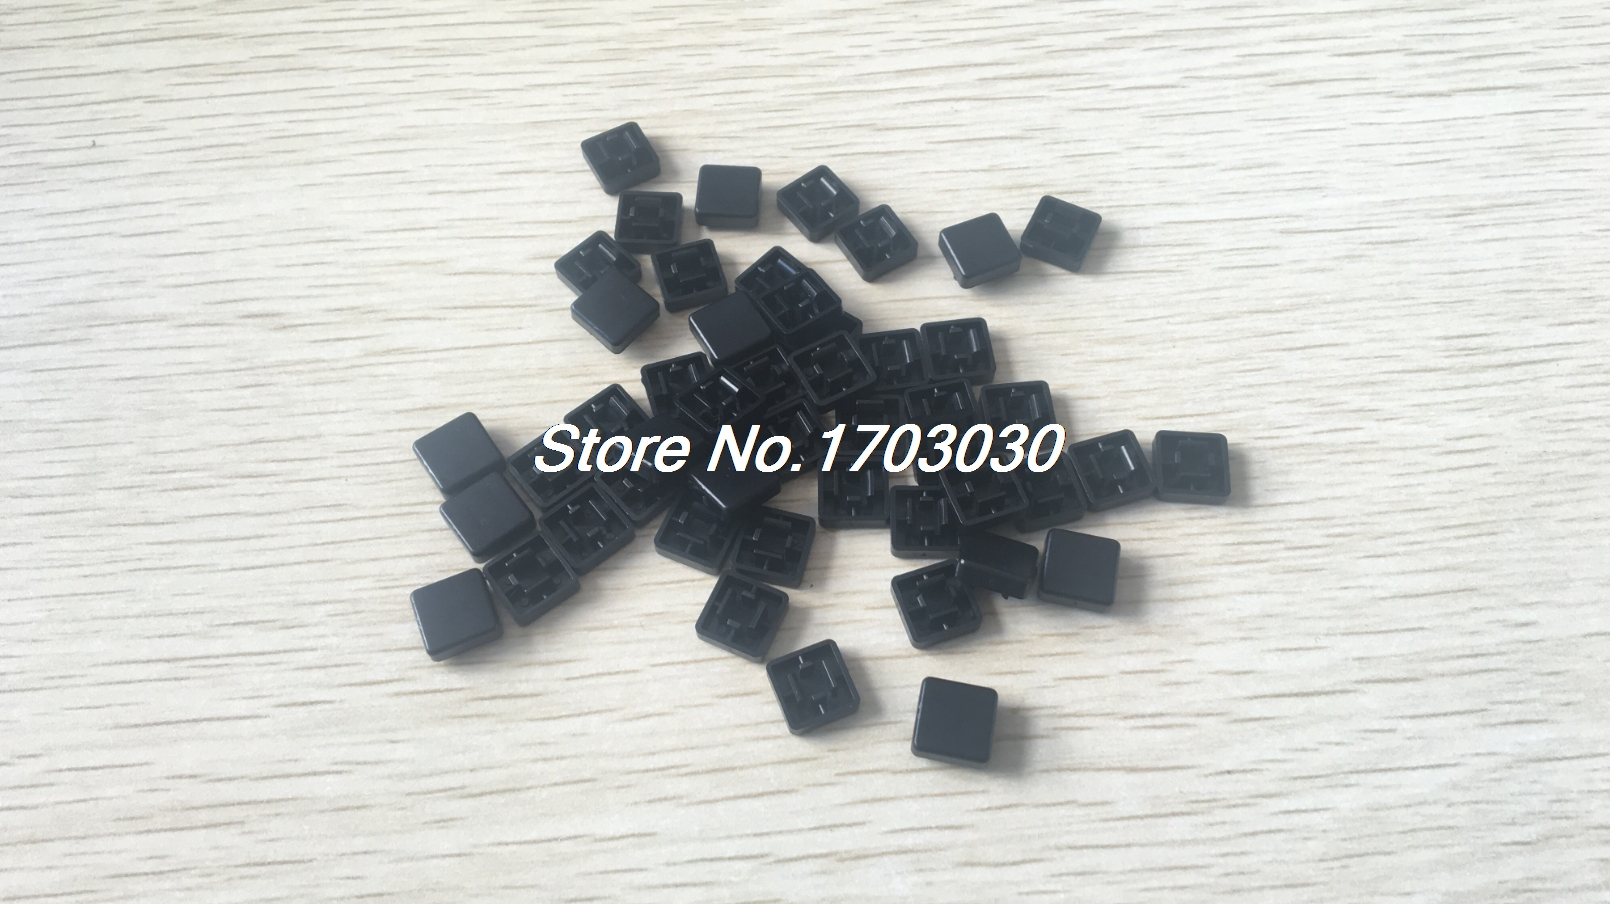 50pcs Square Shaped Plate Tactile Push Button Switch Tact Caps Protector 50pcs lot 6x6x7mm 4pin g92 tactile tact push button micro switch direct self reset dip top copper free shipping russia